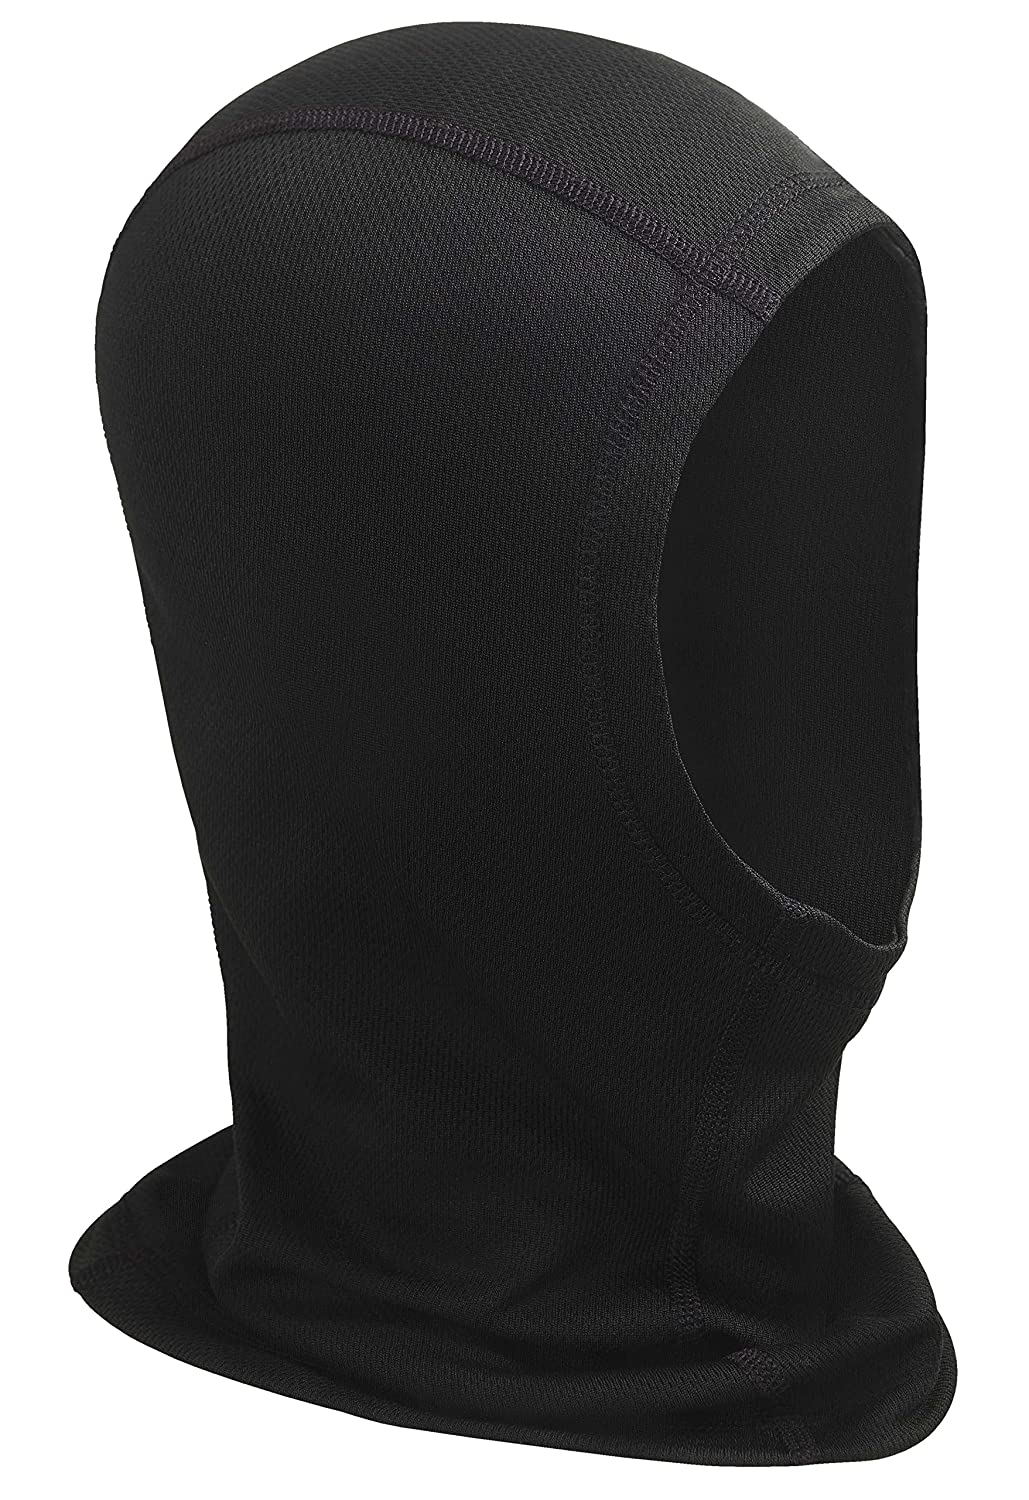 Helly Hansen Men's HH Dry Balaclava One Size 68080